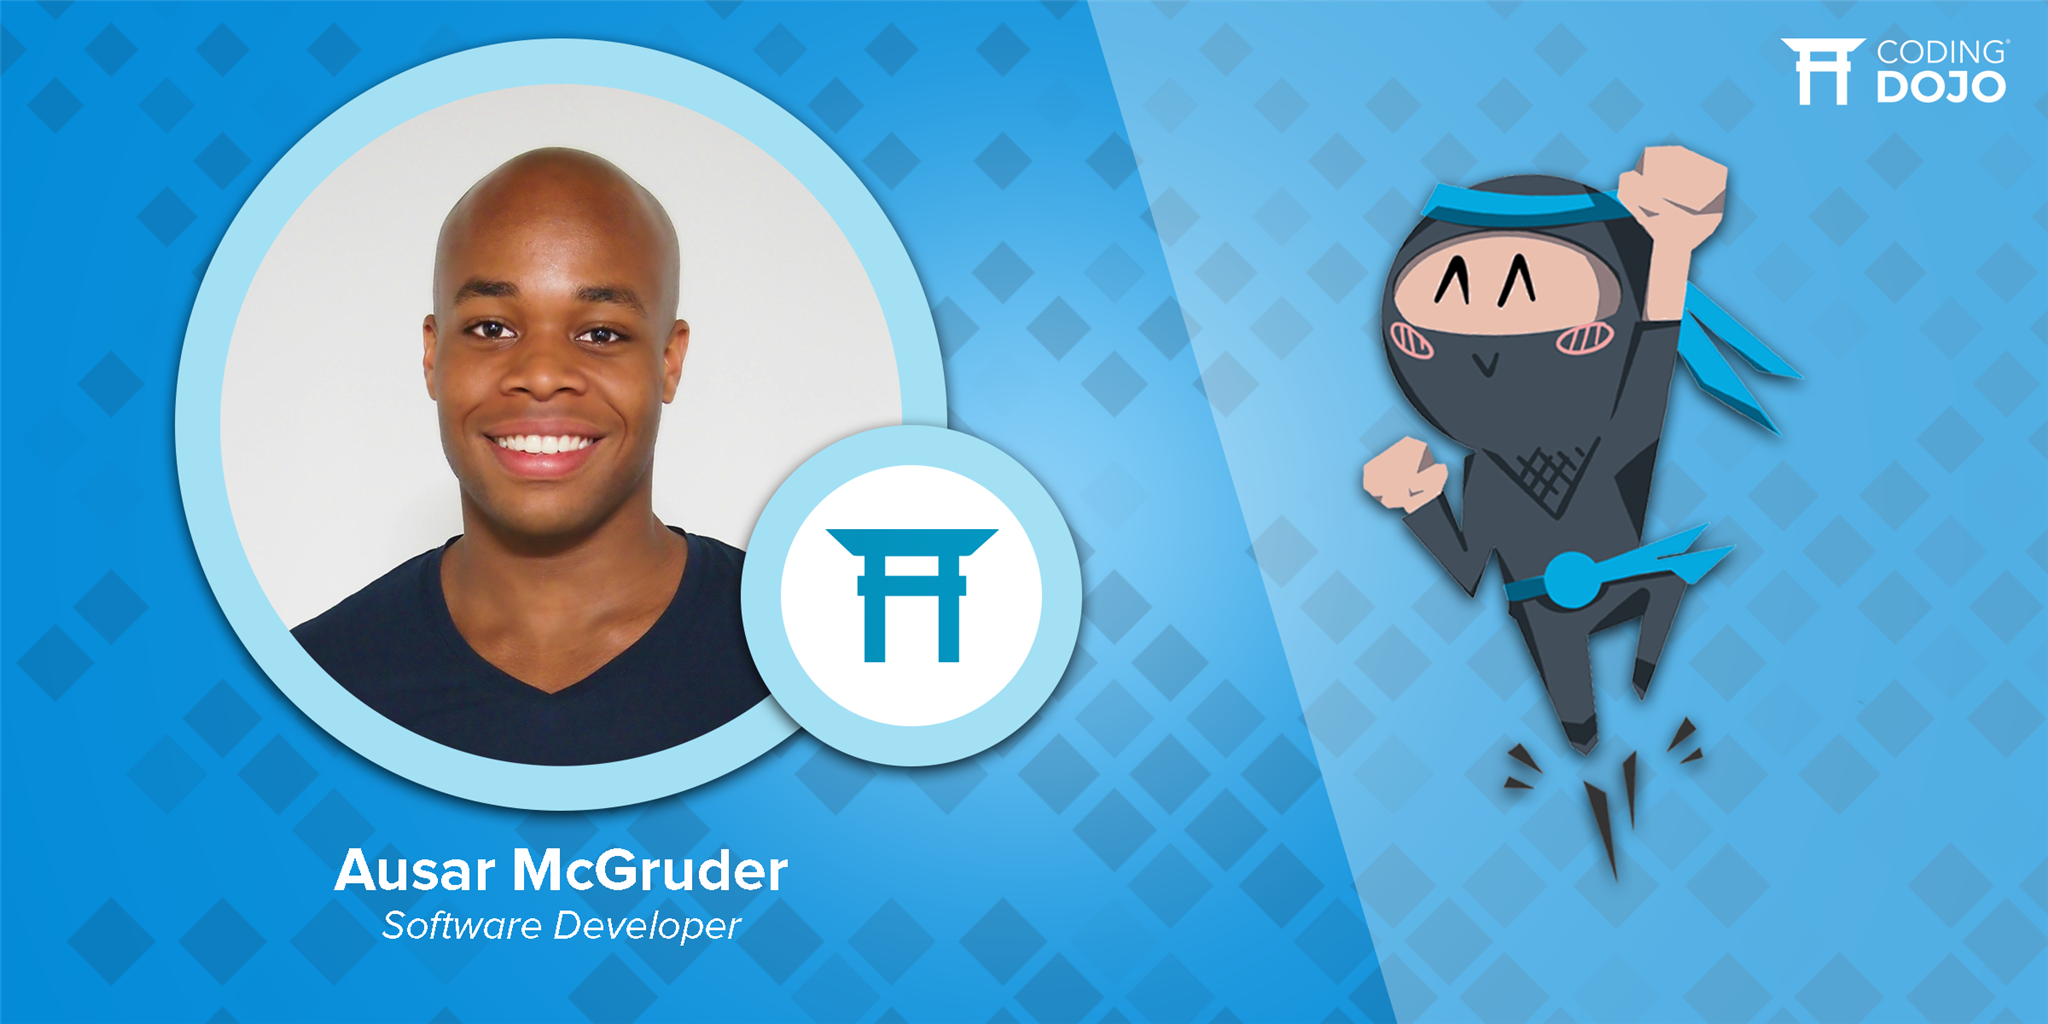 Ausar McGruder; Coding Dojo Graduate, Now a System Analyst and Software Developer